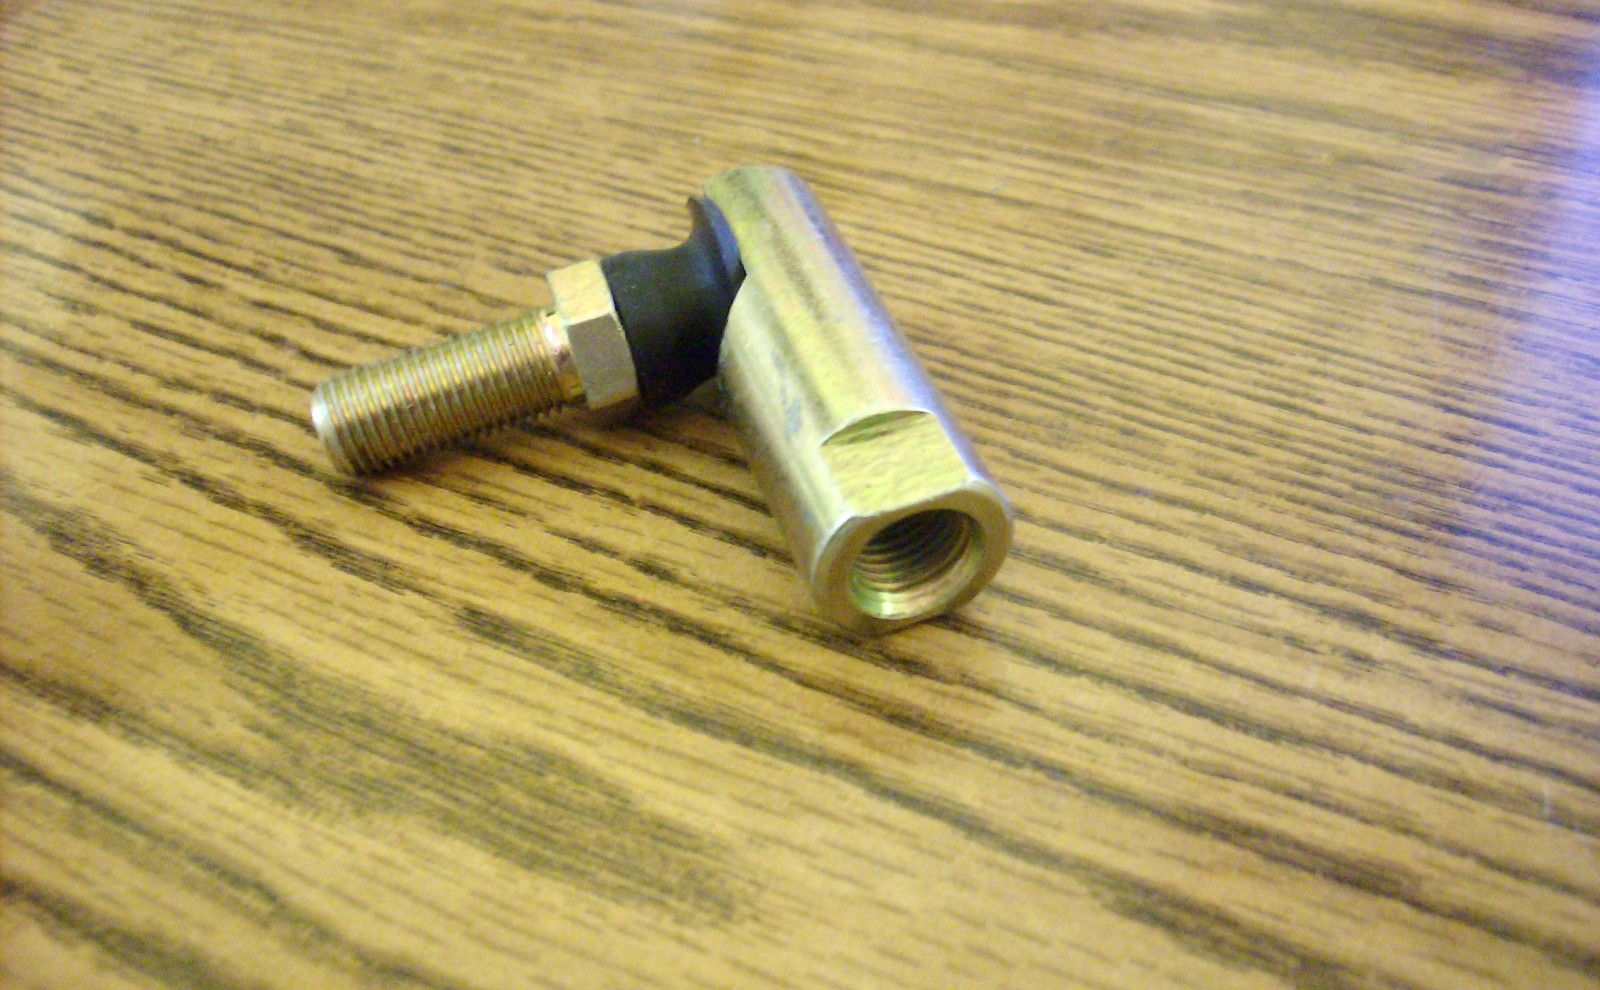 Ball joint for Ariens lawn mower 00336900, 02917100